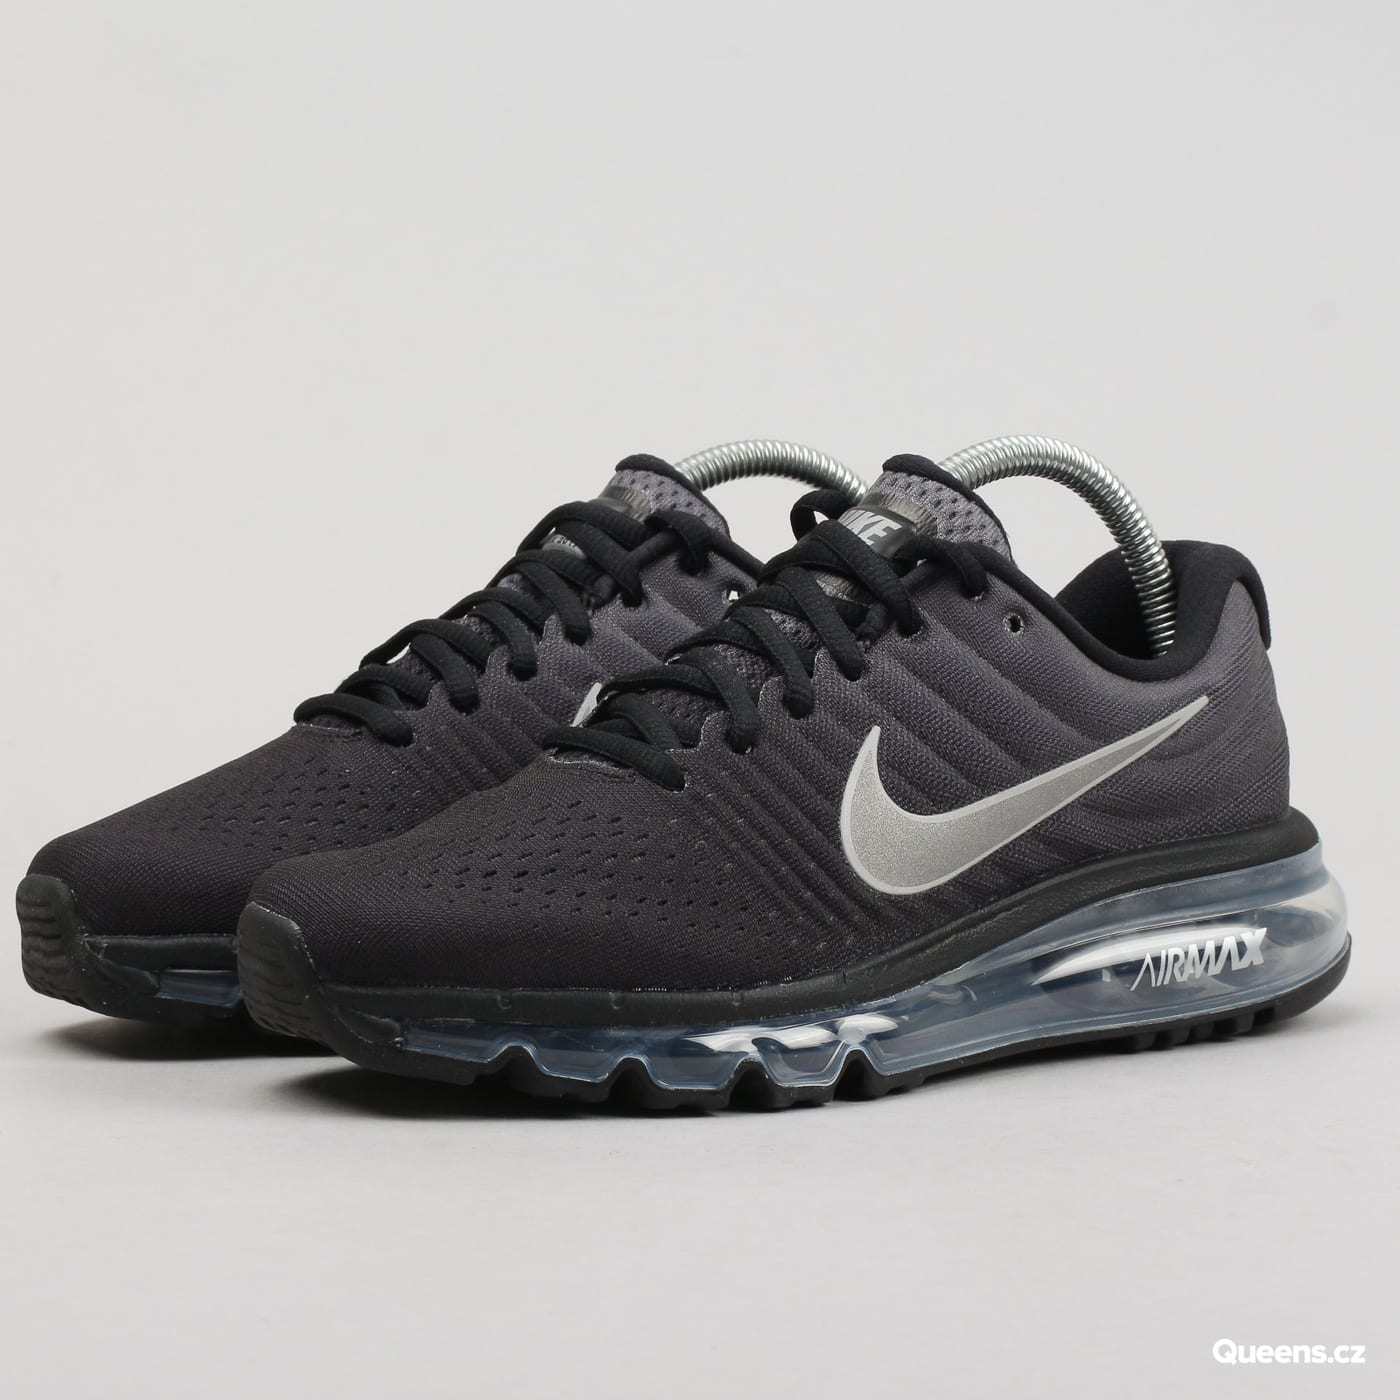 new styles d3c3a 4b3c0 Nike Air Max 2017 (GS) black / summit white - anthracite ...